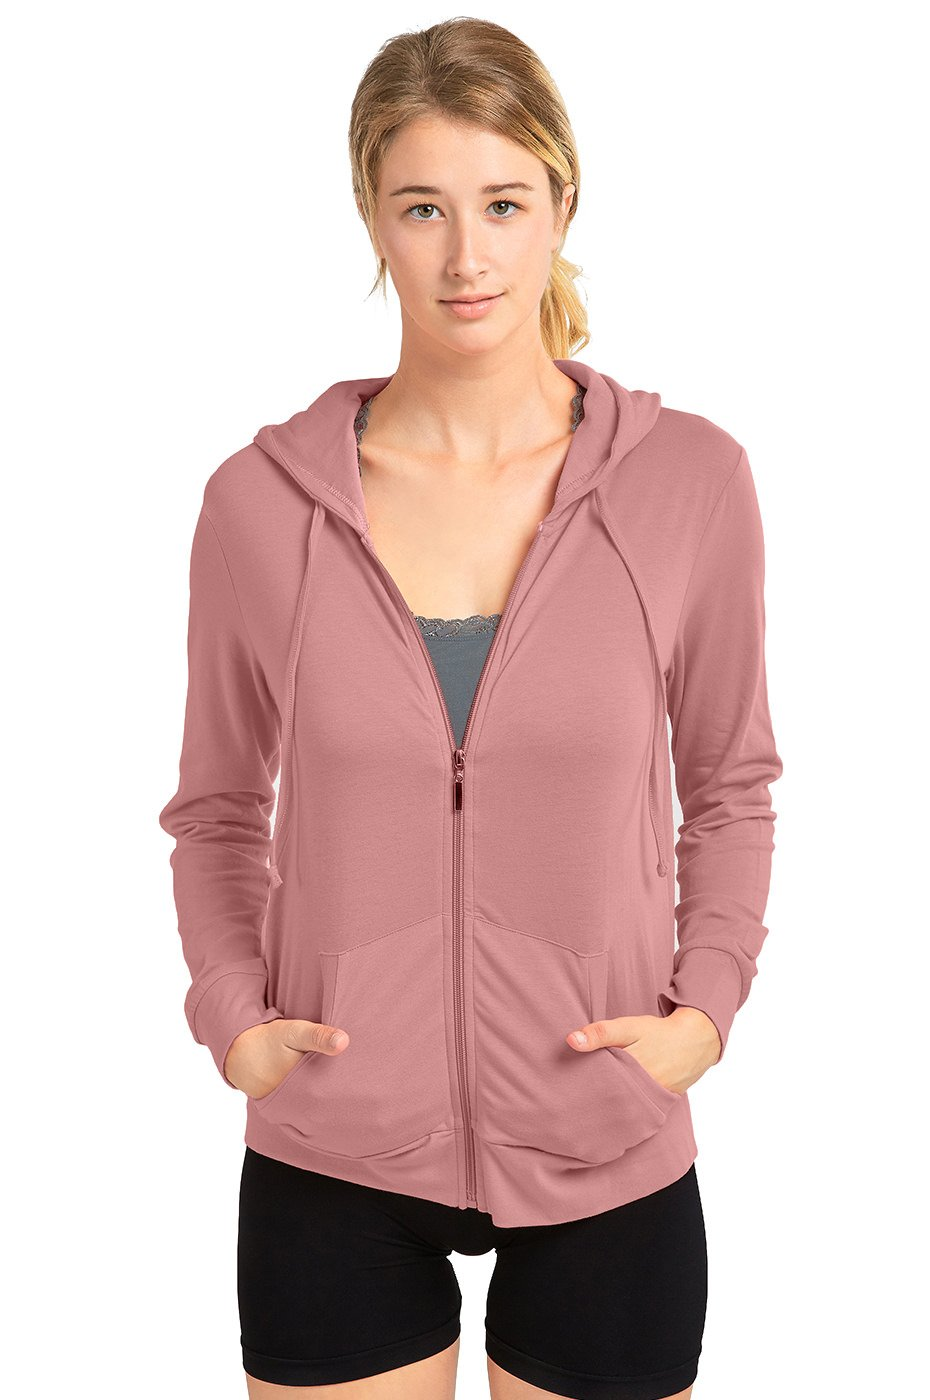 Sofra Women's Thin Cotton Zip Up Hoodie Jacket (XL, MV.Rose)